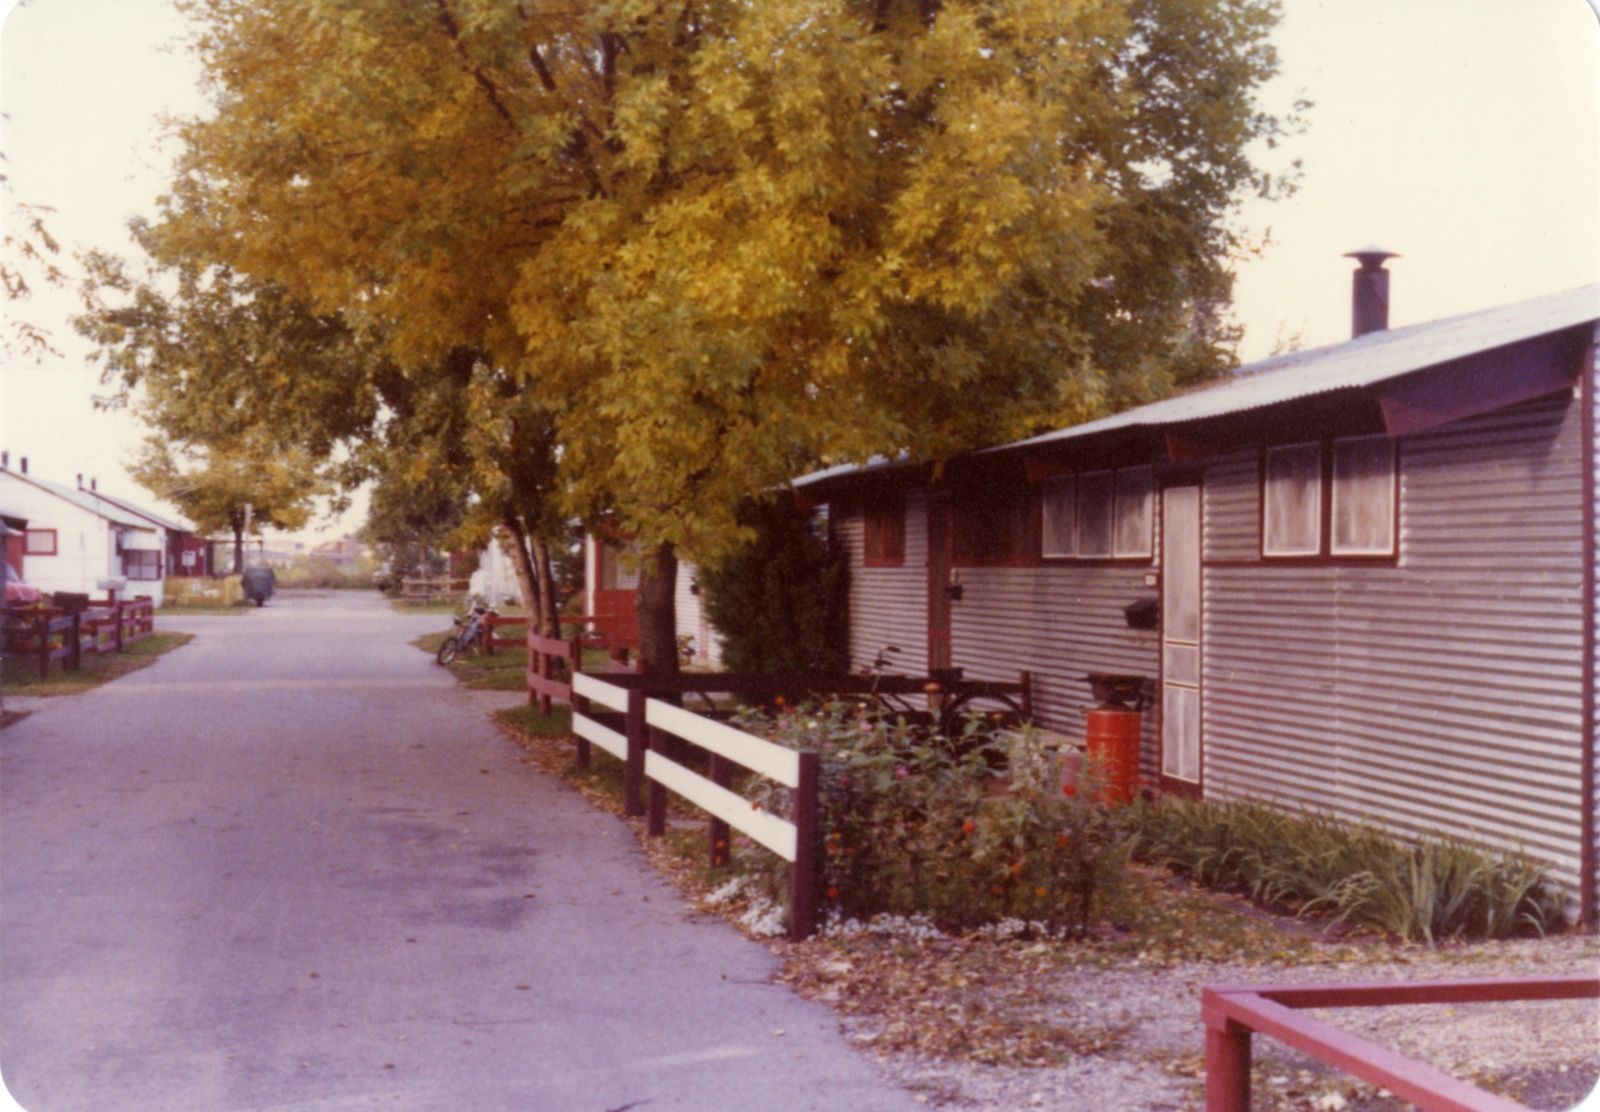 824 Pammel Court, home of Janet Jepeway. Fall 1978.